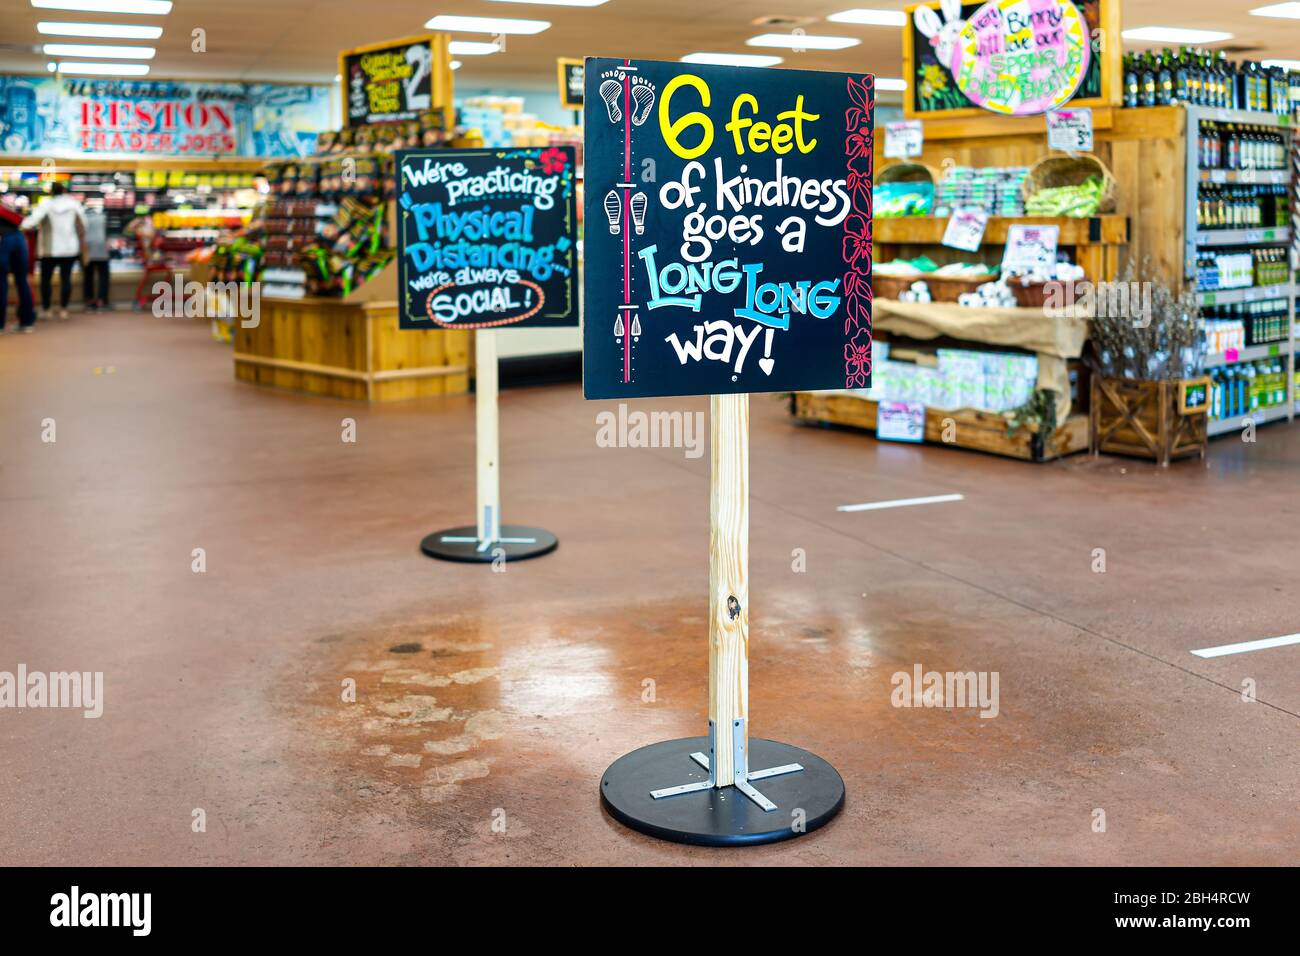 Reston, USA - April 9, 2020: Social distancing sign inside Trader Joe's grocery shop store during coronavirus with empty interior Stock Photo